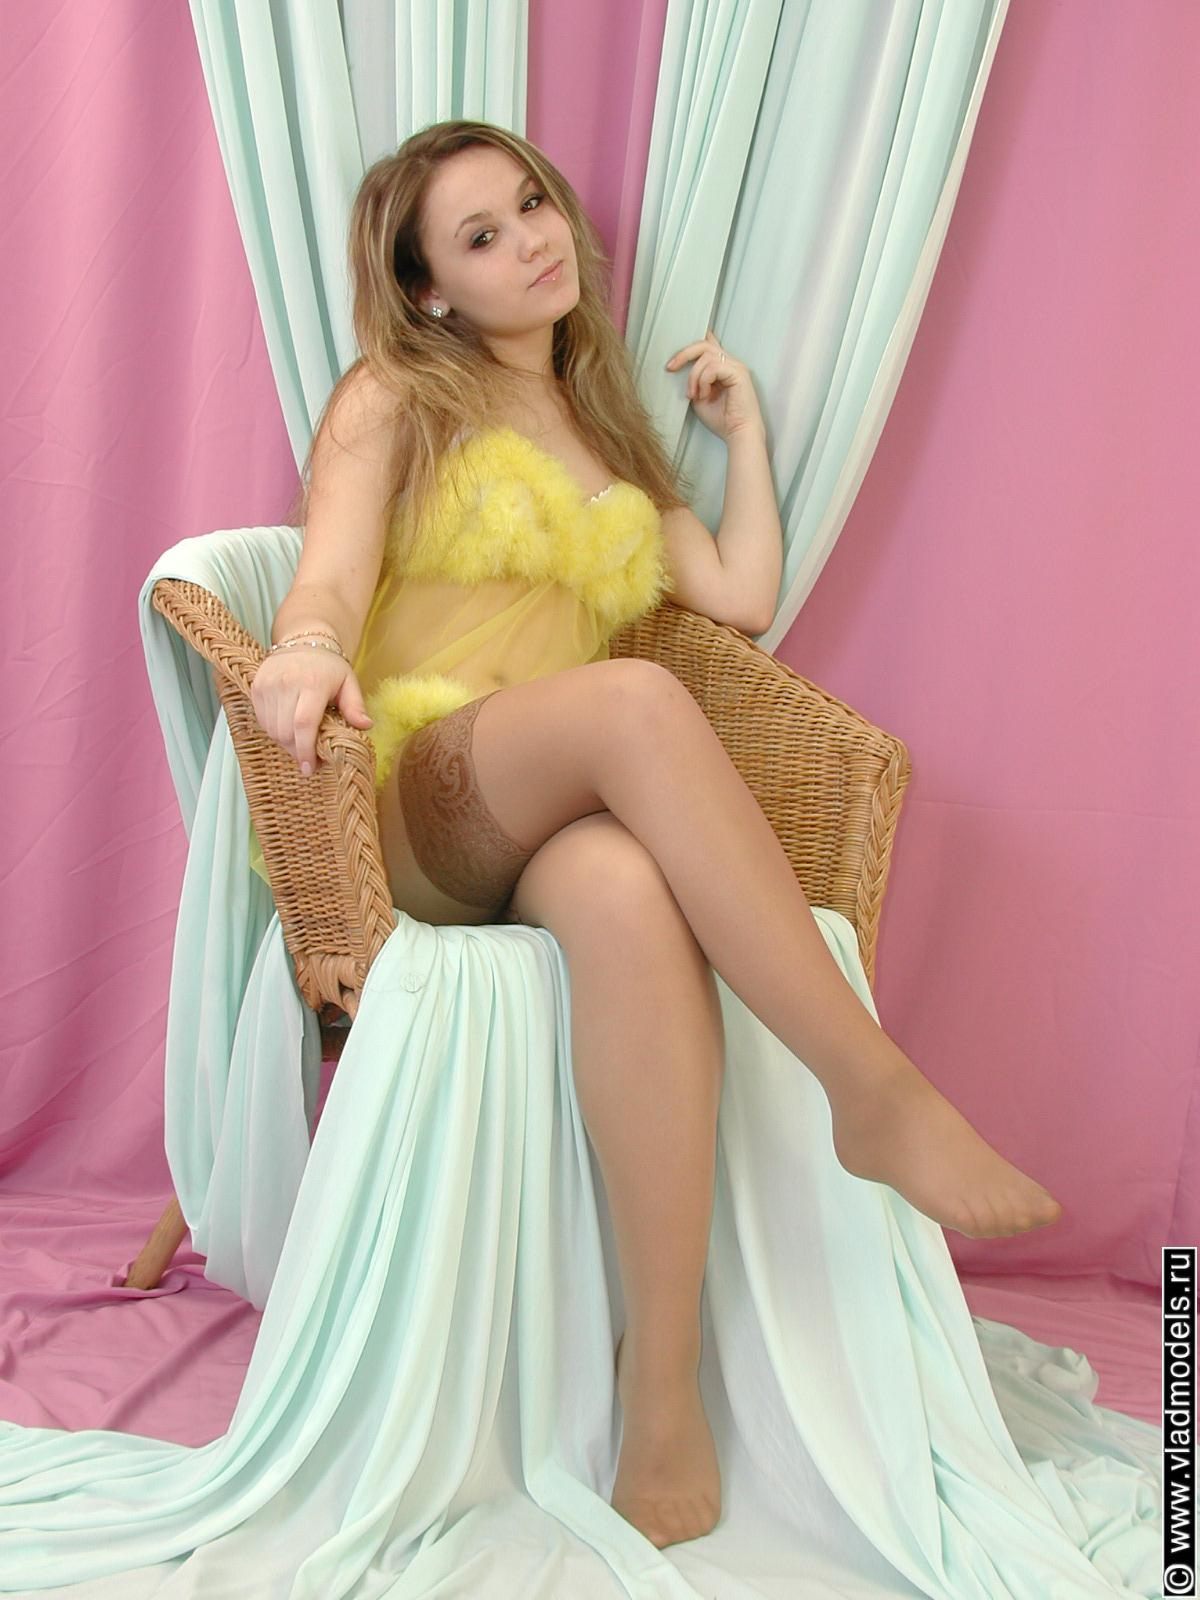 For Alisa vlad model pantyhose opinion